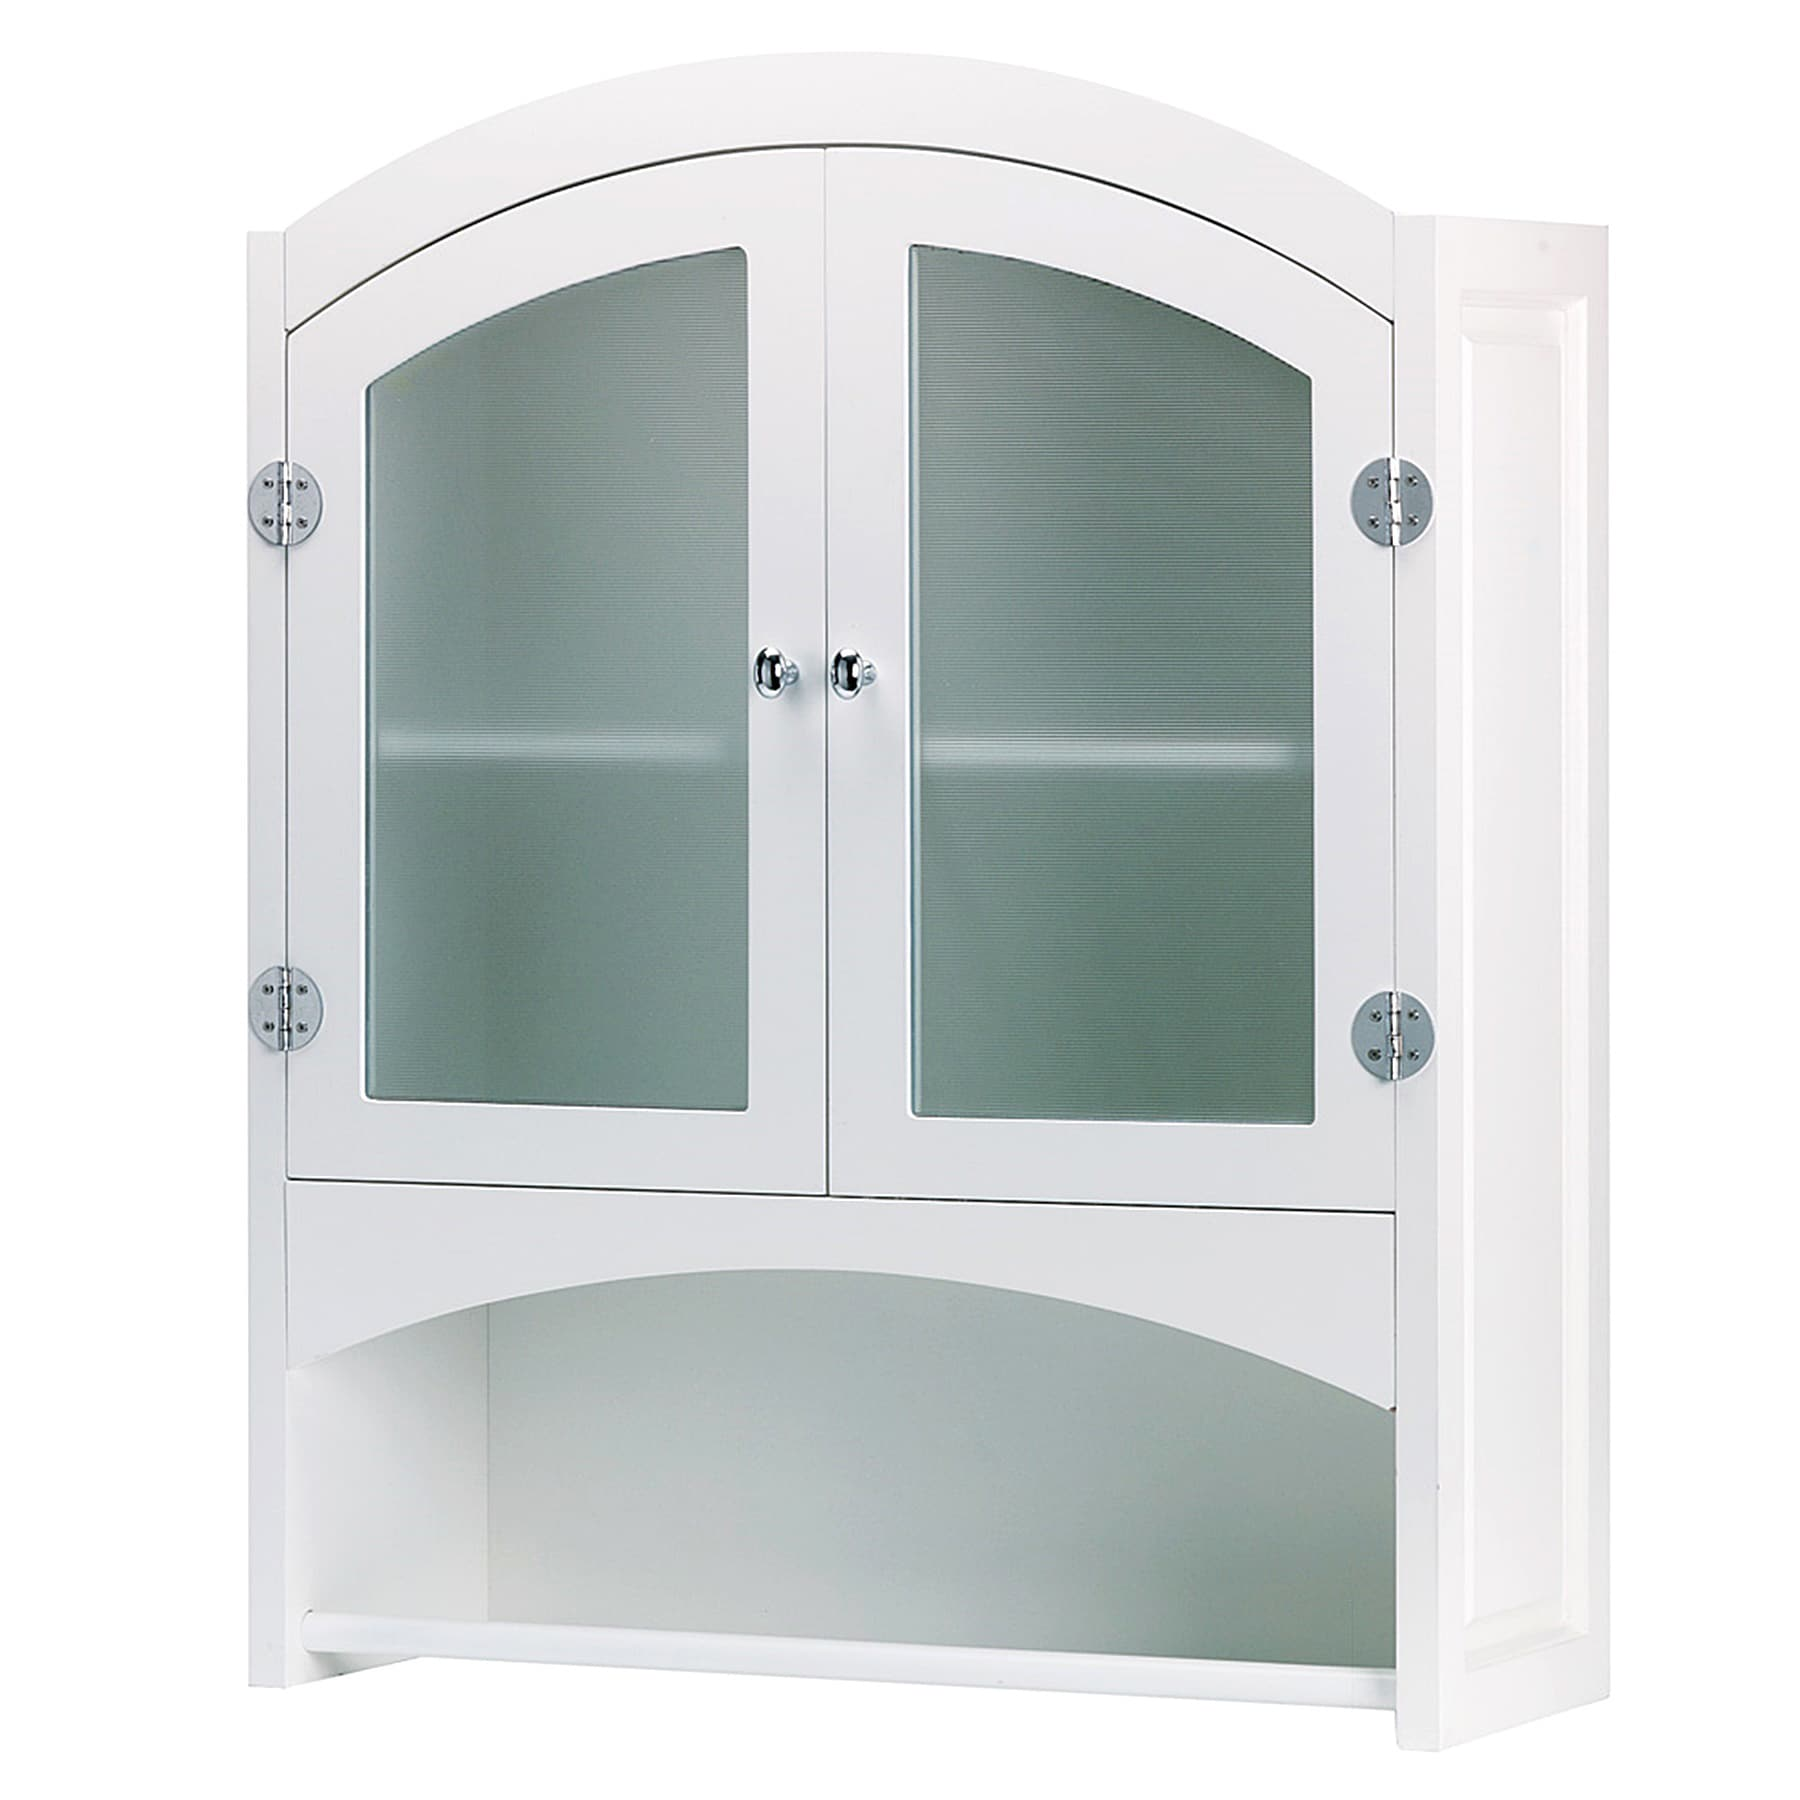 Clic White Wall Mounted Two Door Bathroom Cabinet Free Shipping Today 11580411